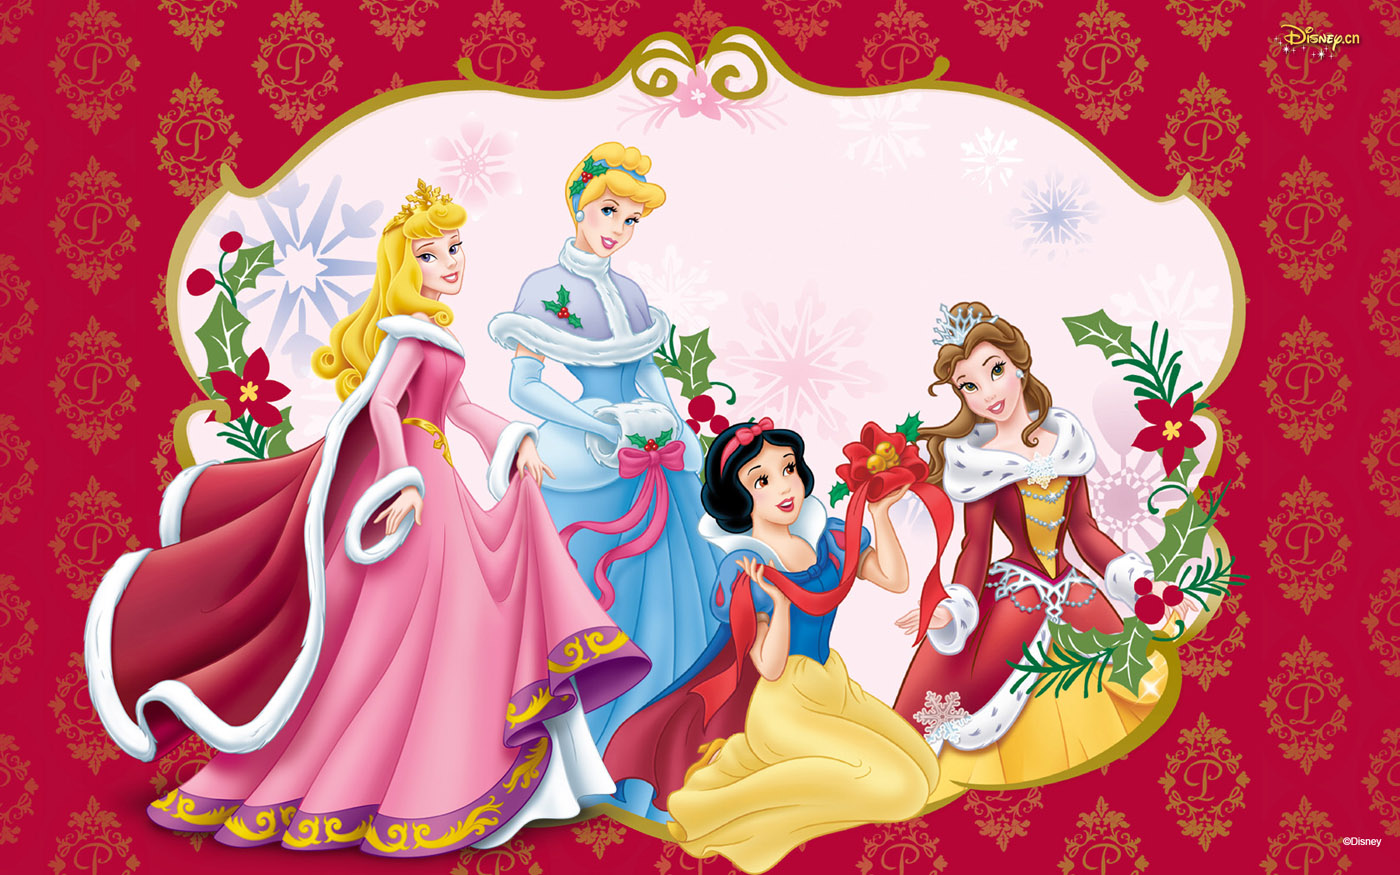 Disney Princess Cartoon Illustration Wallpapers